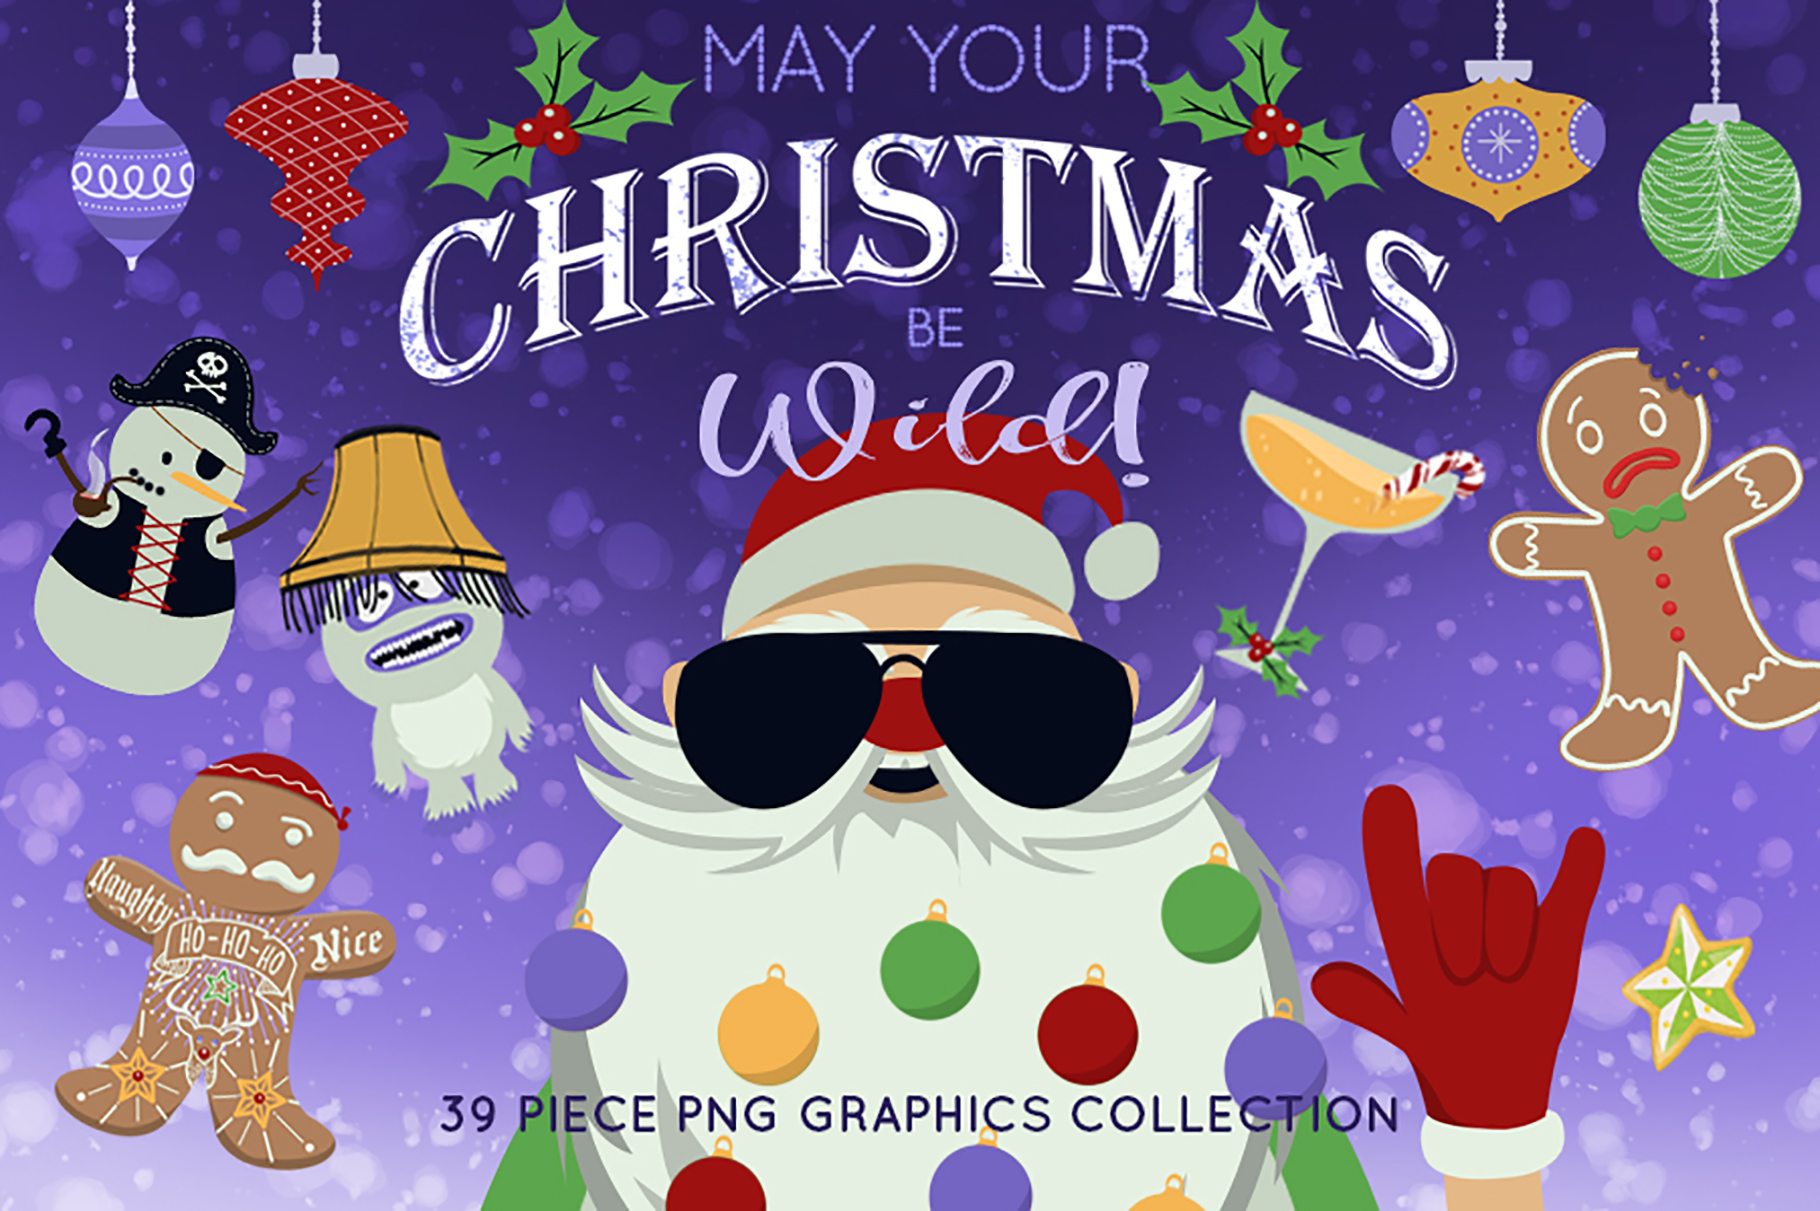 Download Free May Your Christmas Be Wild Graphic By Dapper Dudell Creative for Cricut Explore, Silhouette and other cutting machines.